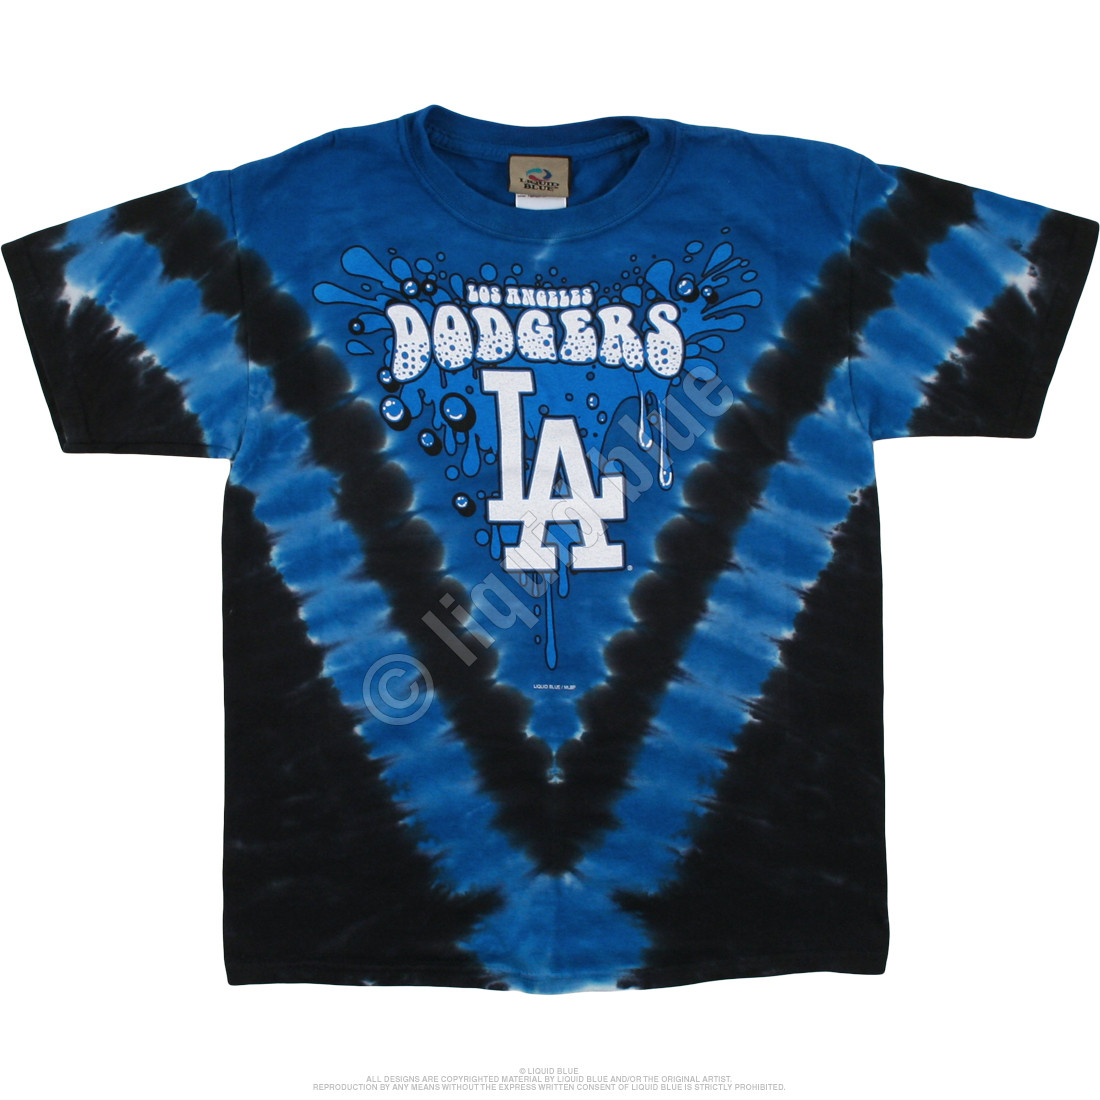 Los Angeles Dodgers Youth Throwback Tie-Dye T-Shirt